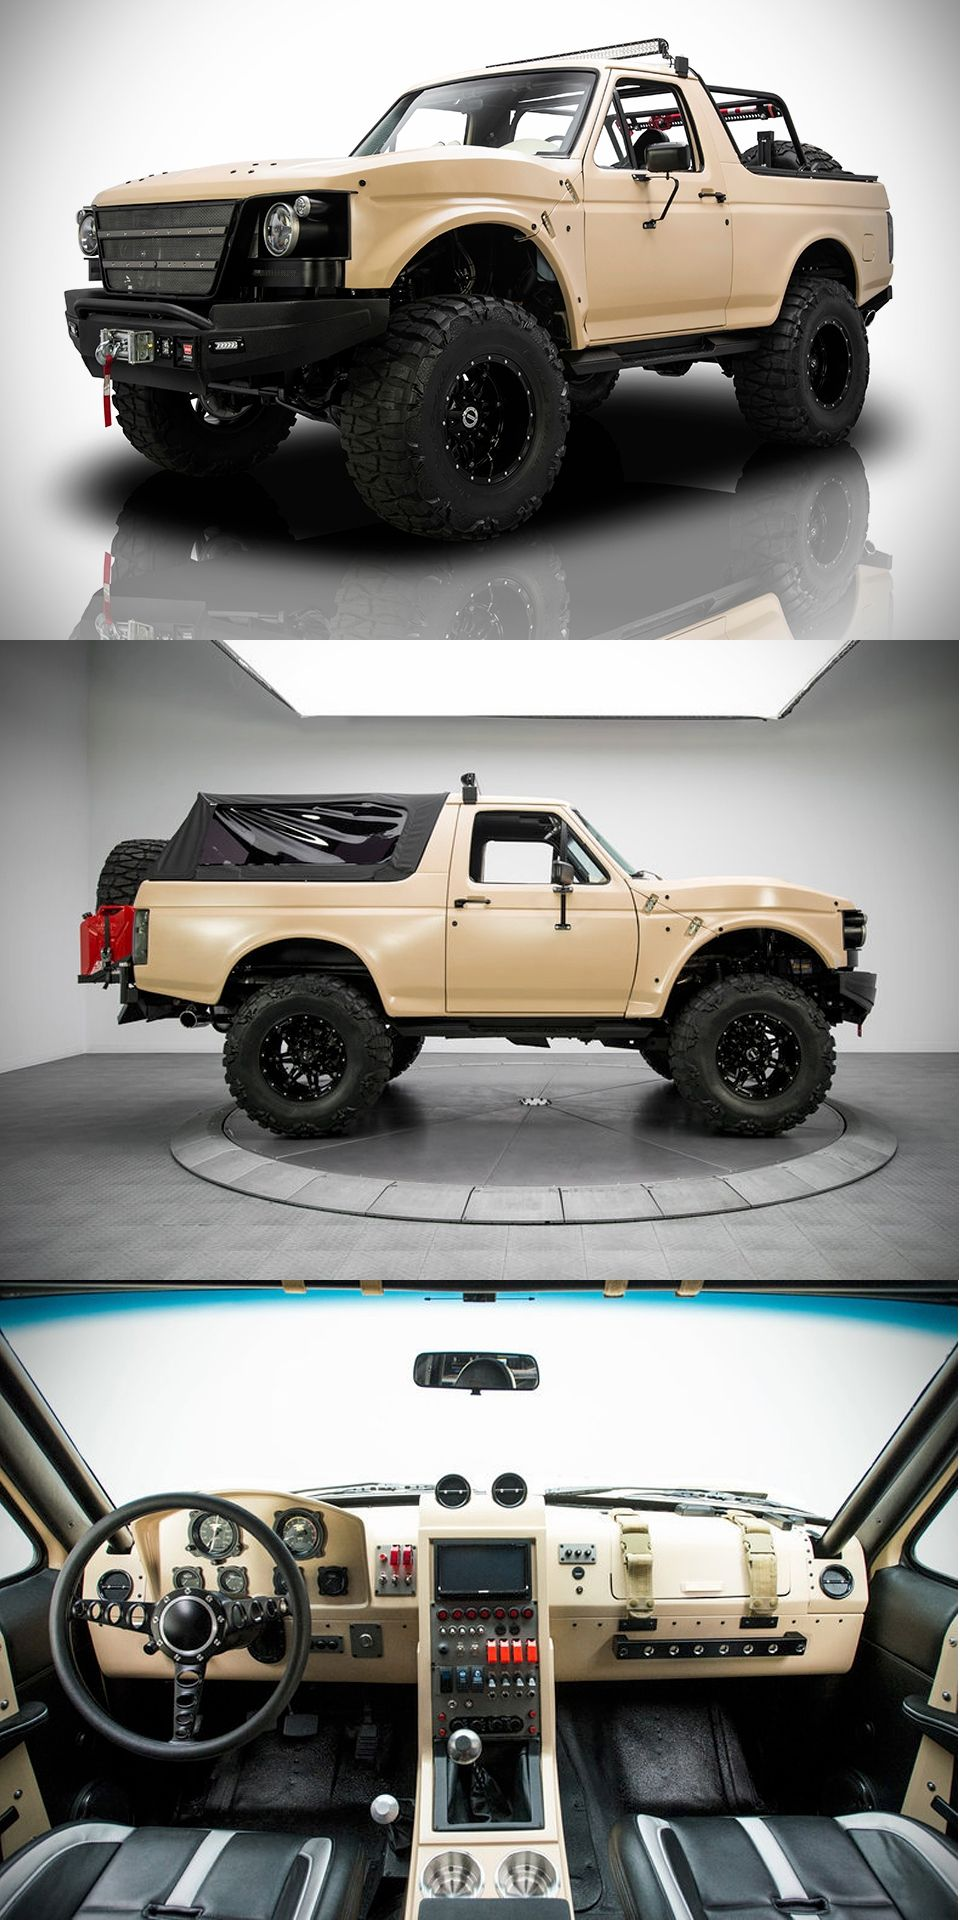 1991 Ford Bronco - Project Fearless. Custom automobile. Inside looks ...